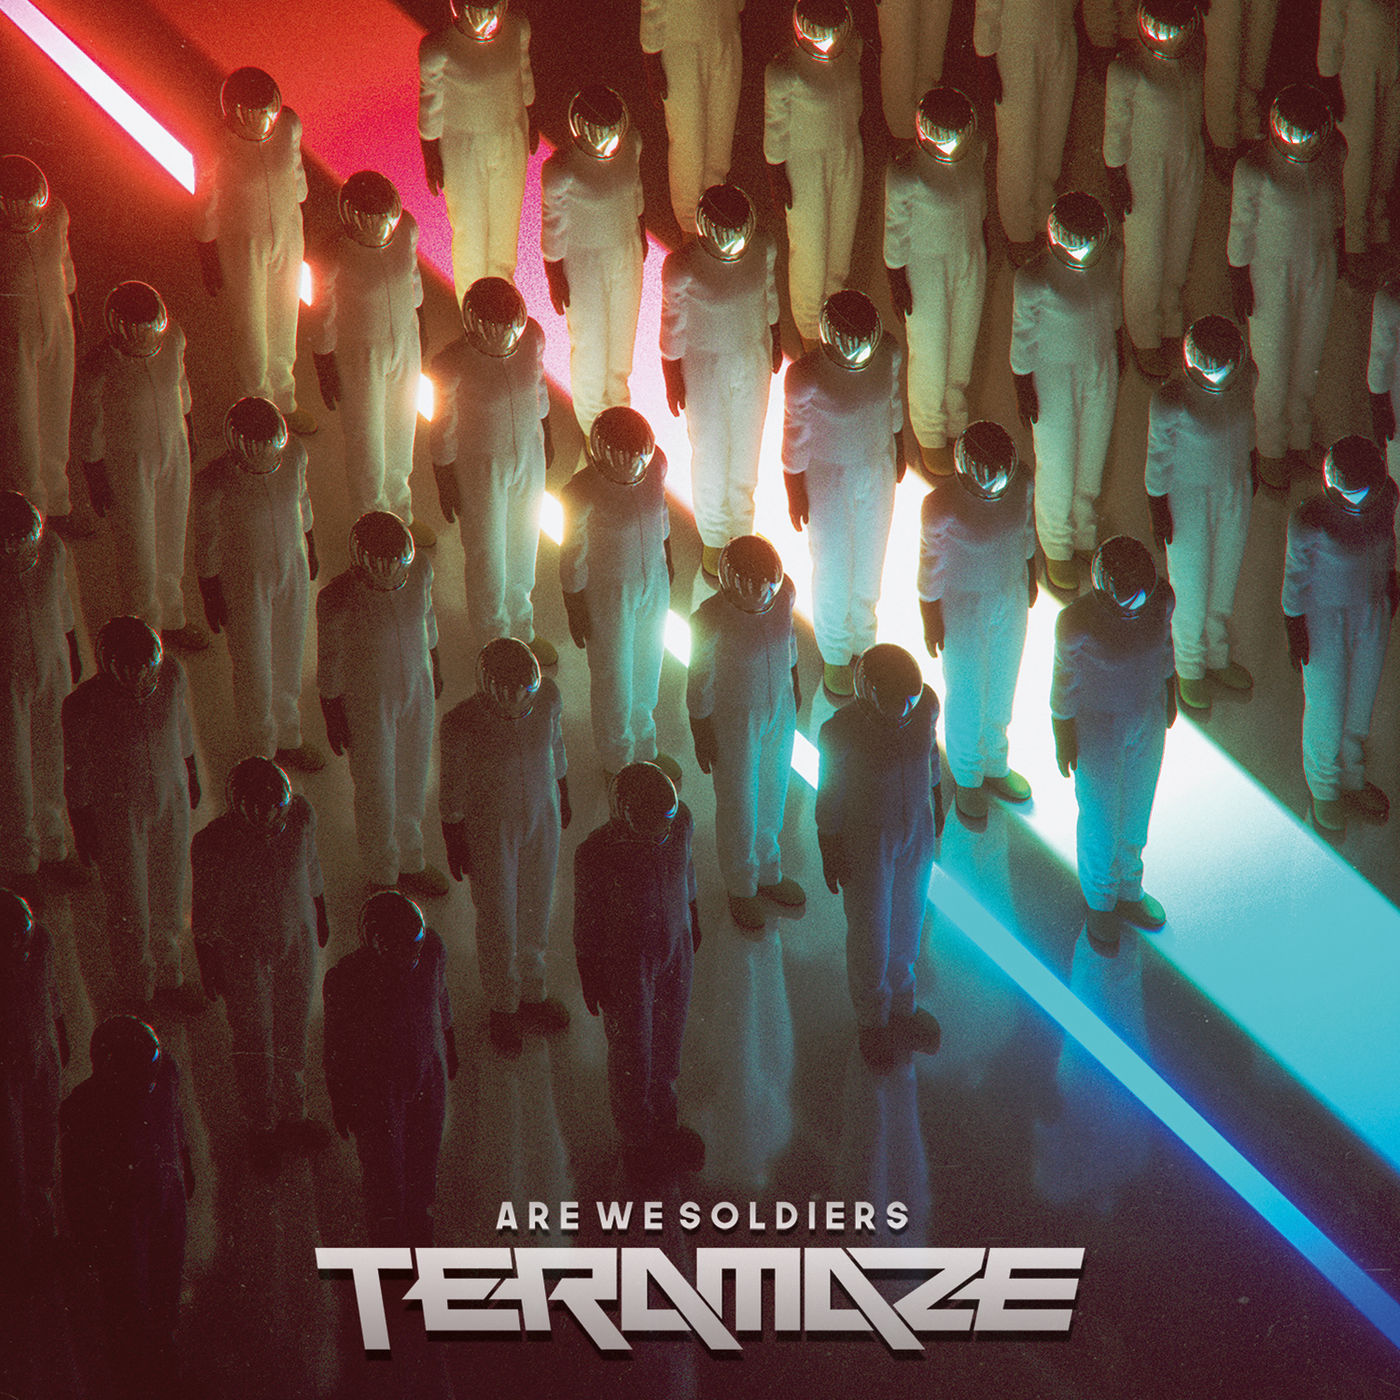 Teramaze - Are We Soldiers (2019)